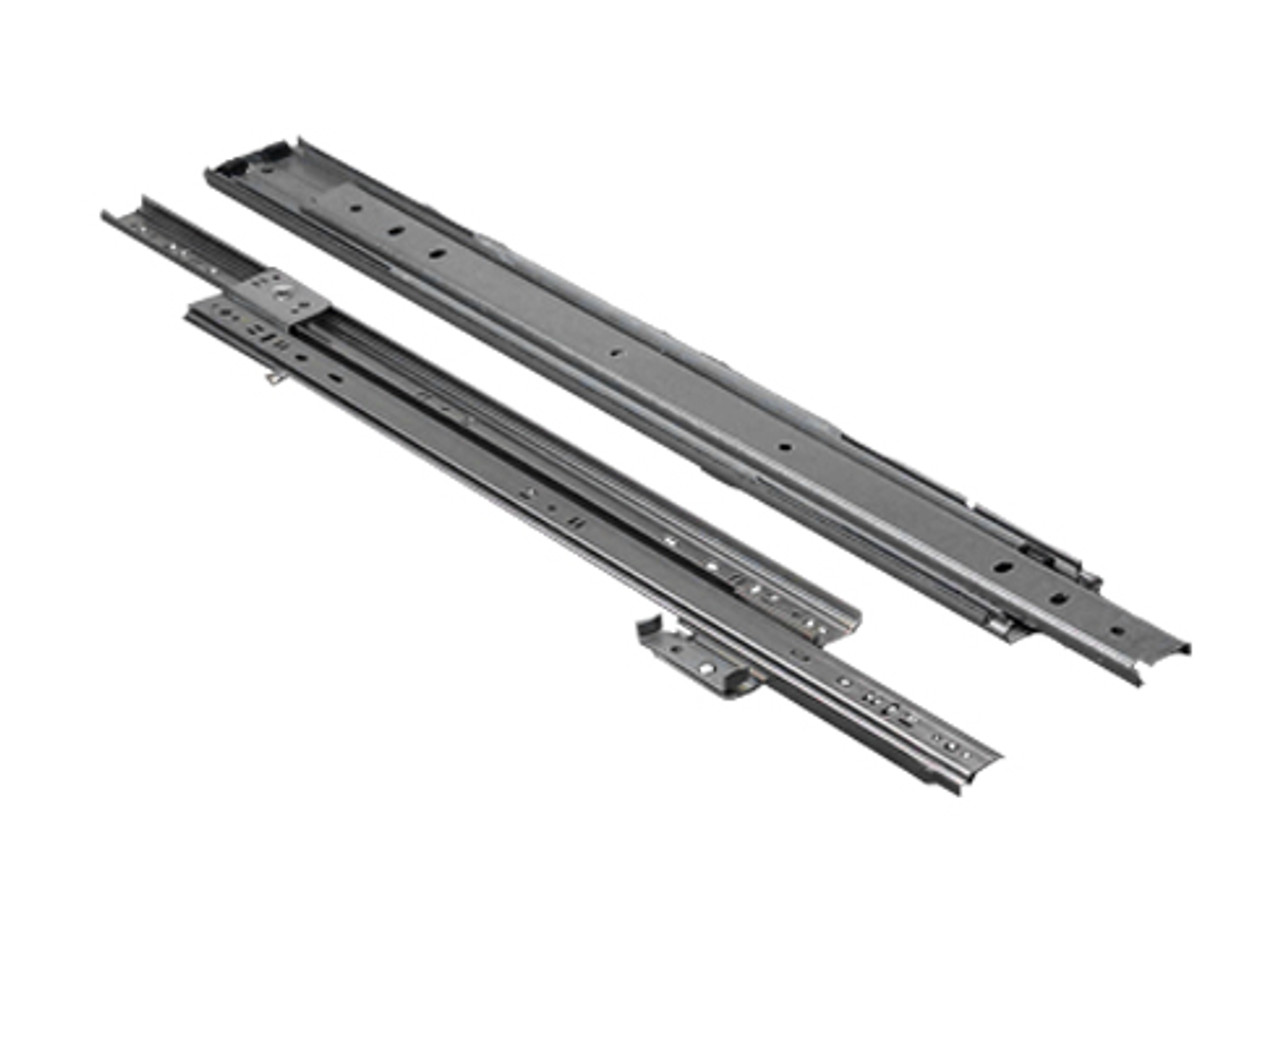 Kason-2-rail-drawer-slides-6052100001312-6052100001314-6052100001316-6052100001318-6052100001320-6052100001322-6052100001324-6052100001326-6052100001328